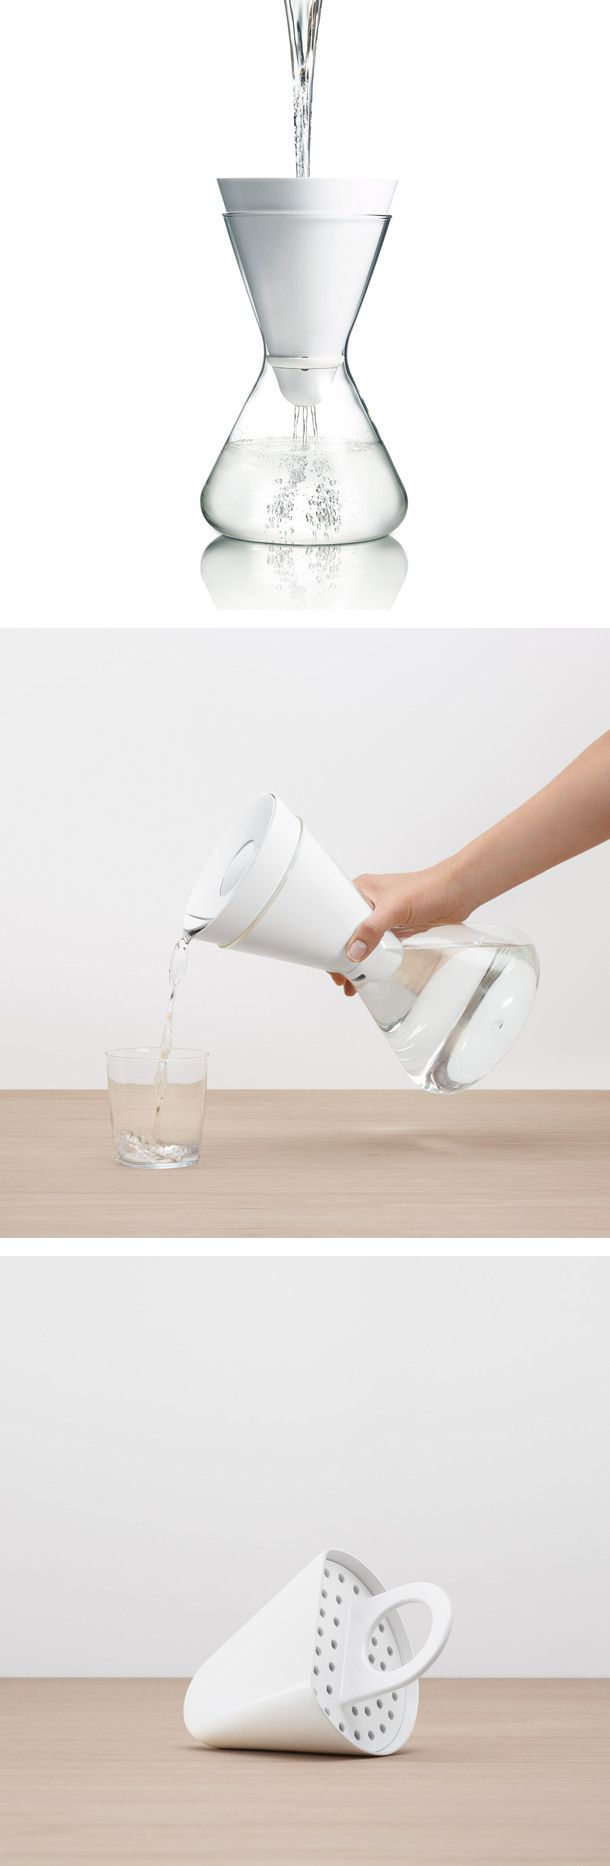 Soma water filter carafe // one of the most elegant product designs in its class #product_design #industrial_design